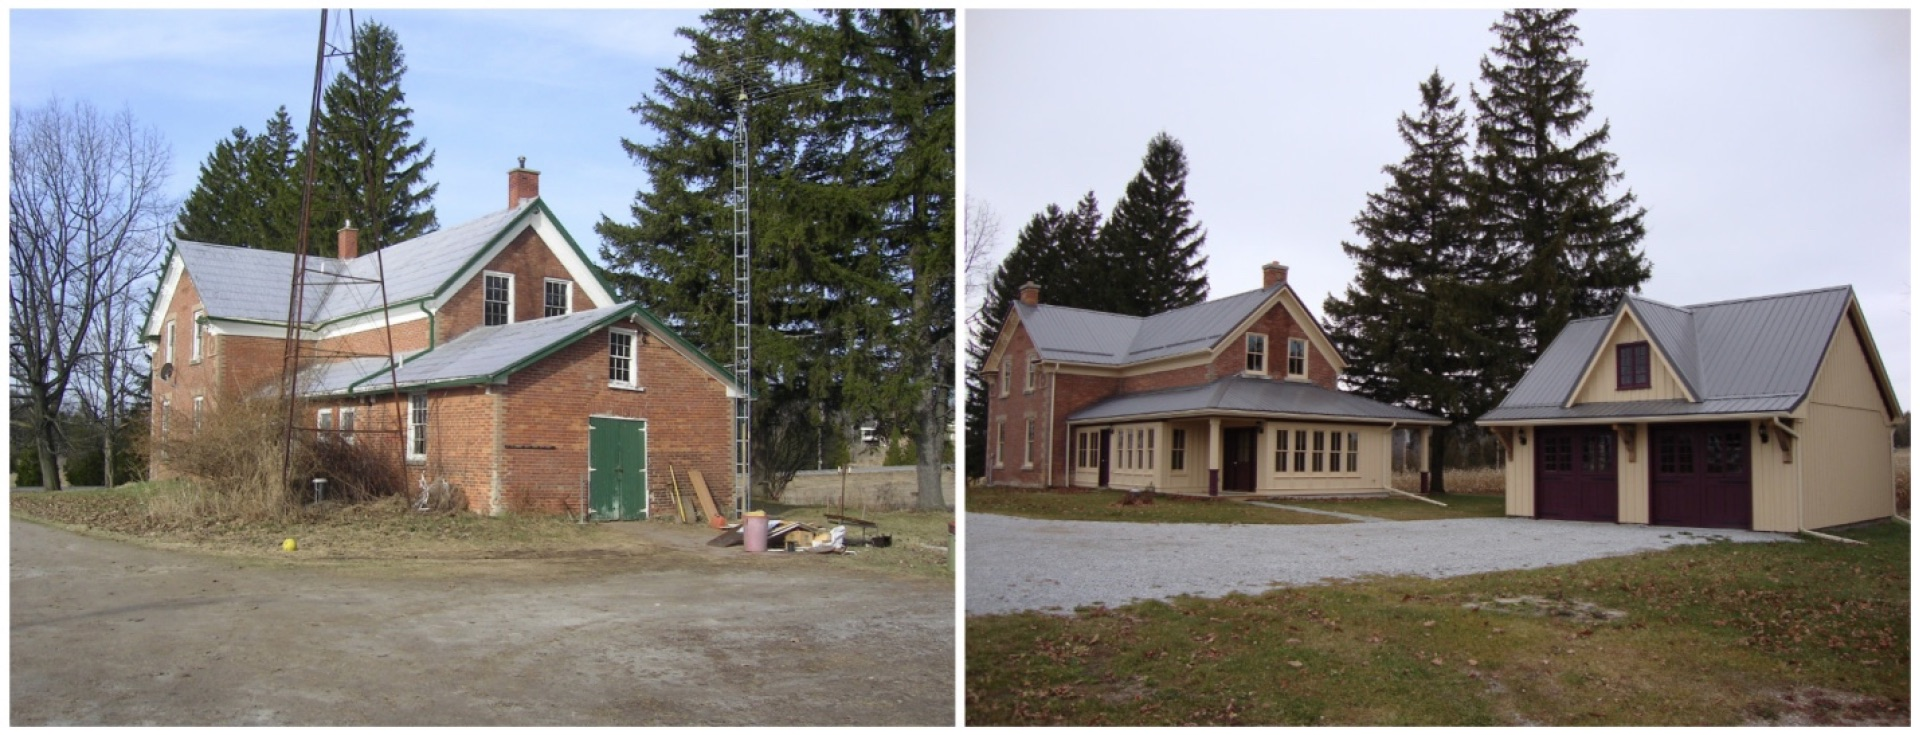 Before and after red brick farmhouse coachhouse.jpg